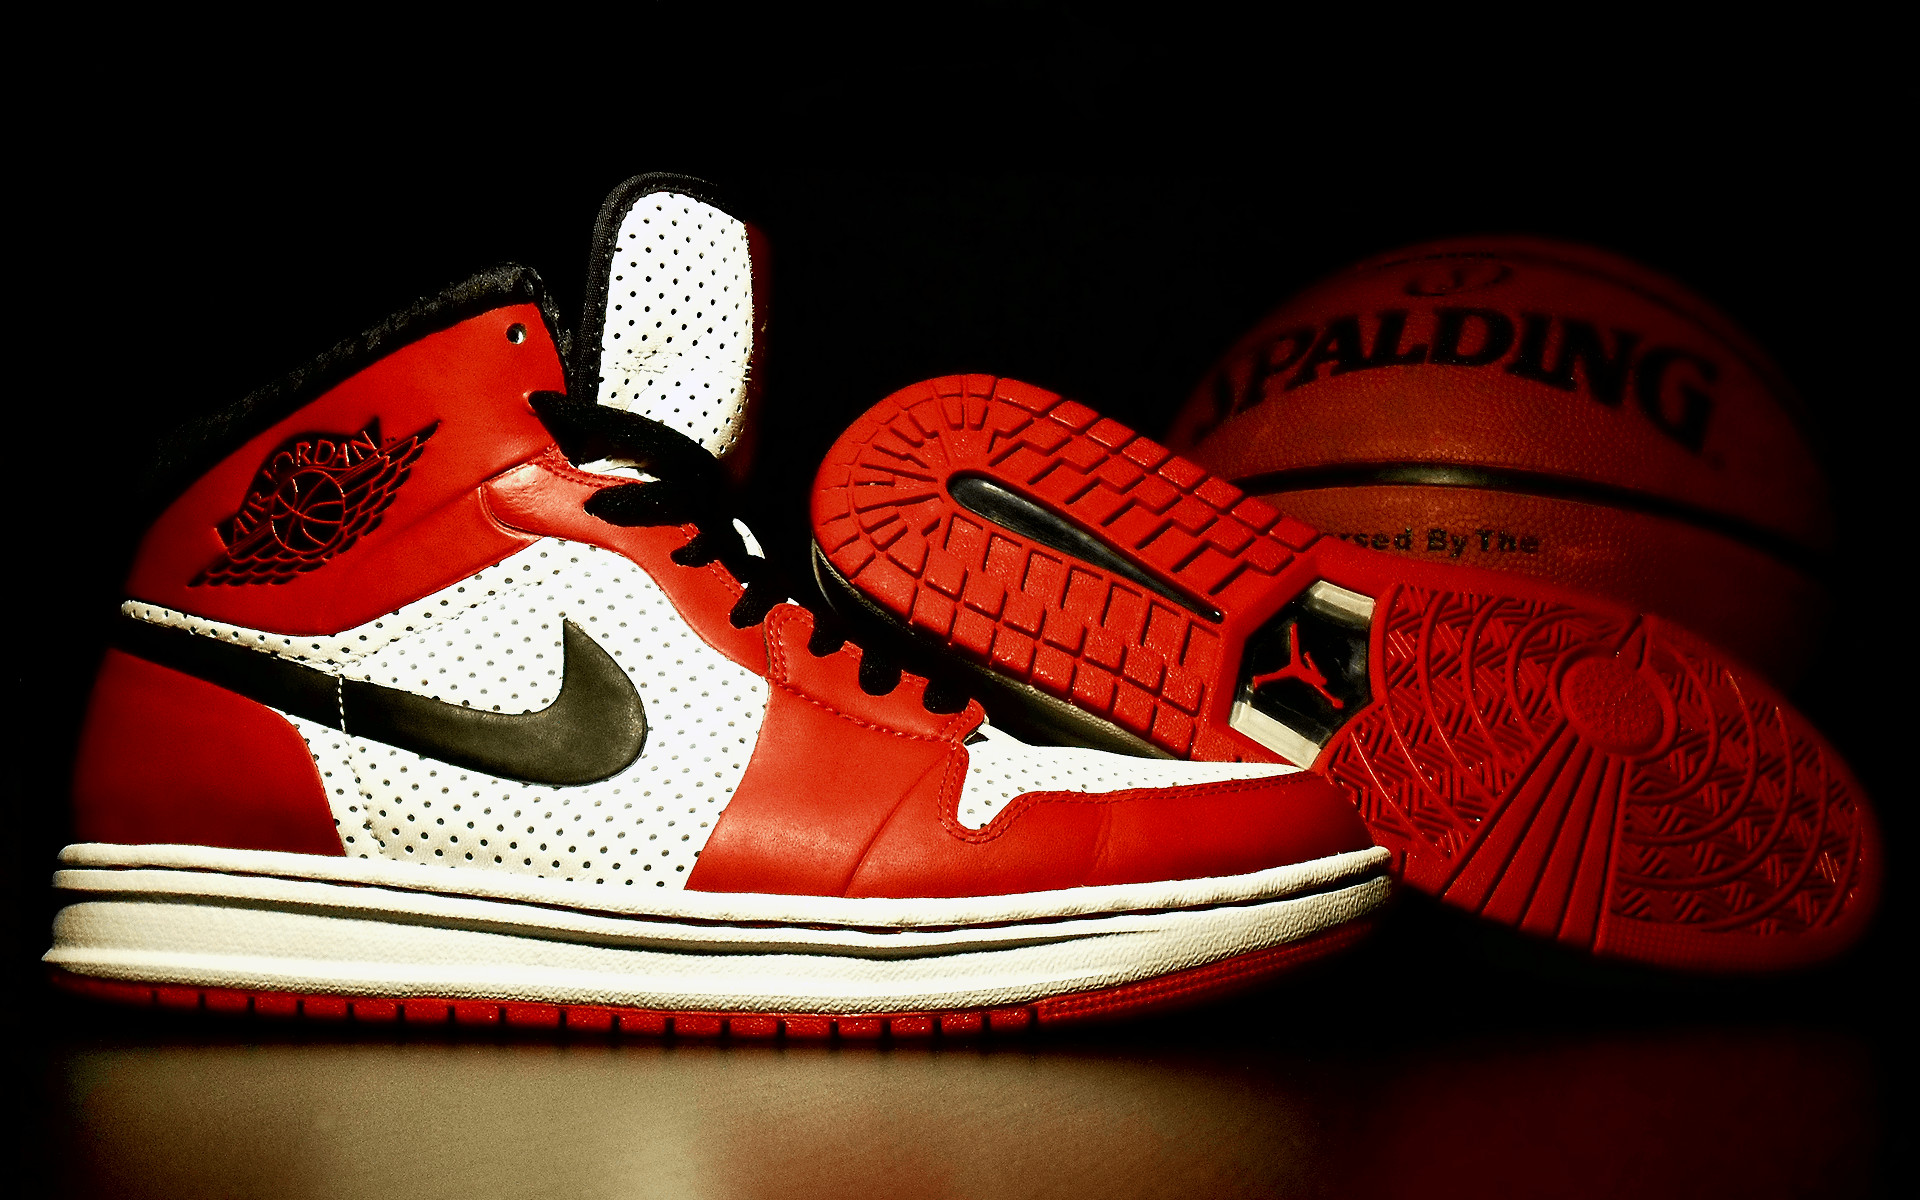 Res: 1920x1200, Download Free Air Jordan Shoes Wallpapers | HD Wallpapers .